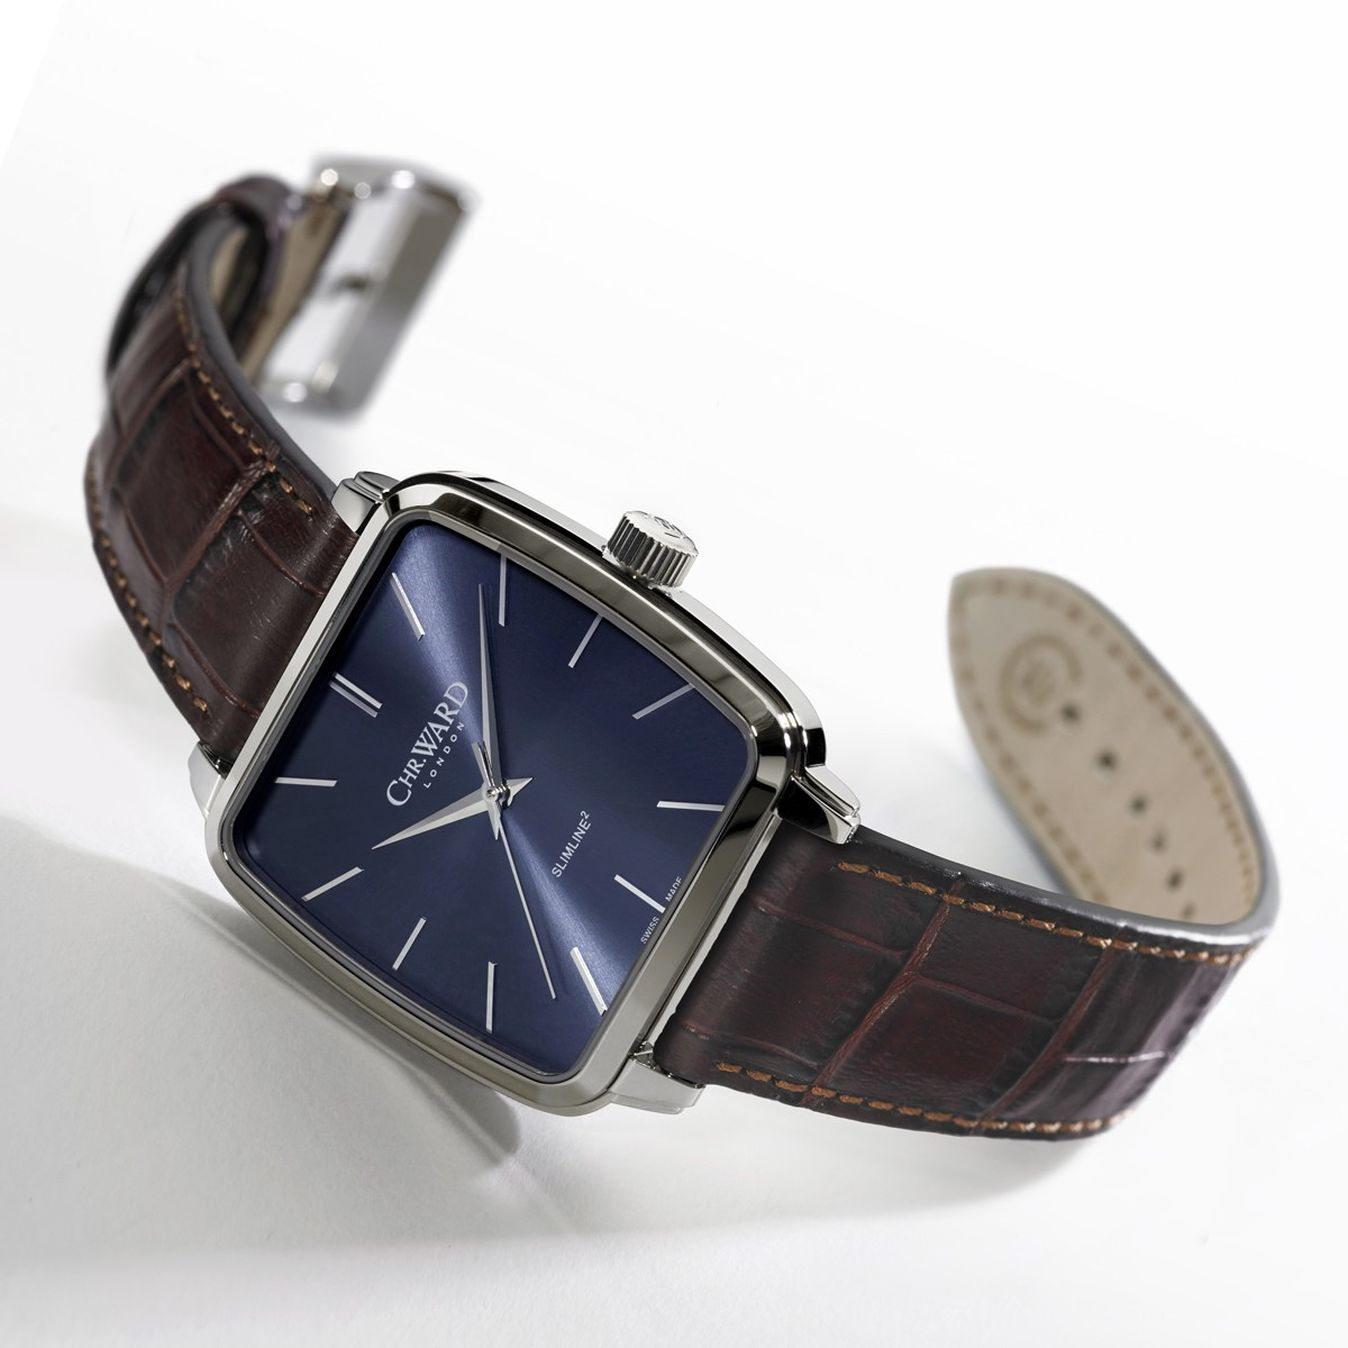 Chr. Ward C5 Malvern Slimline Square Hand-Wound (brown leather strap)